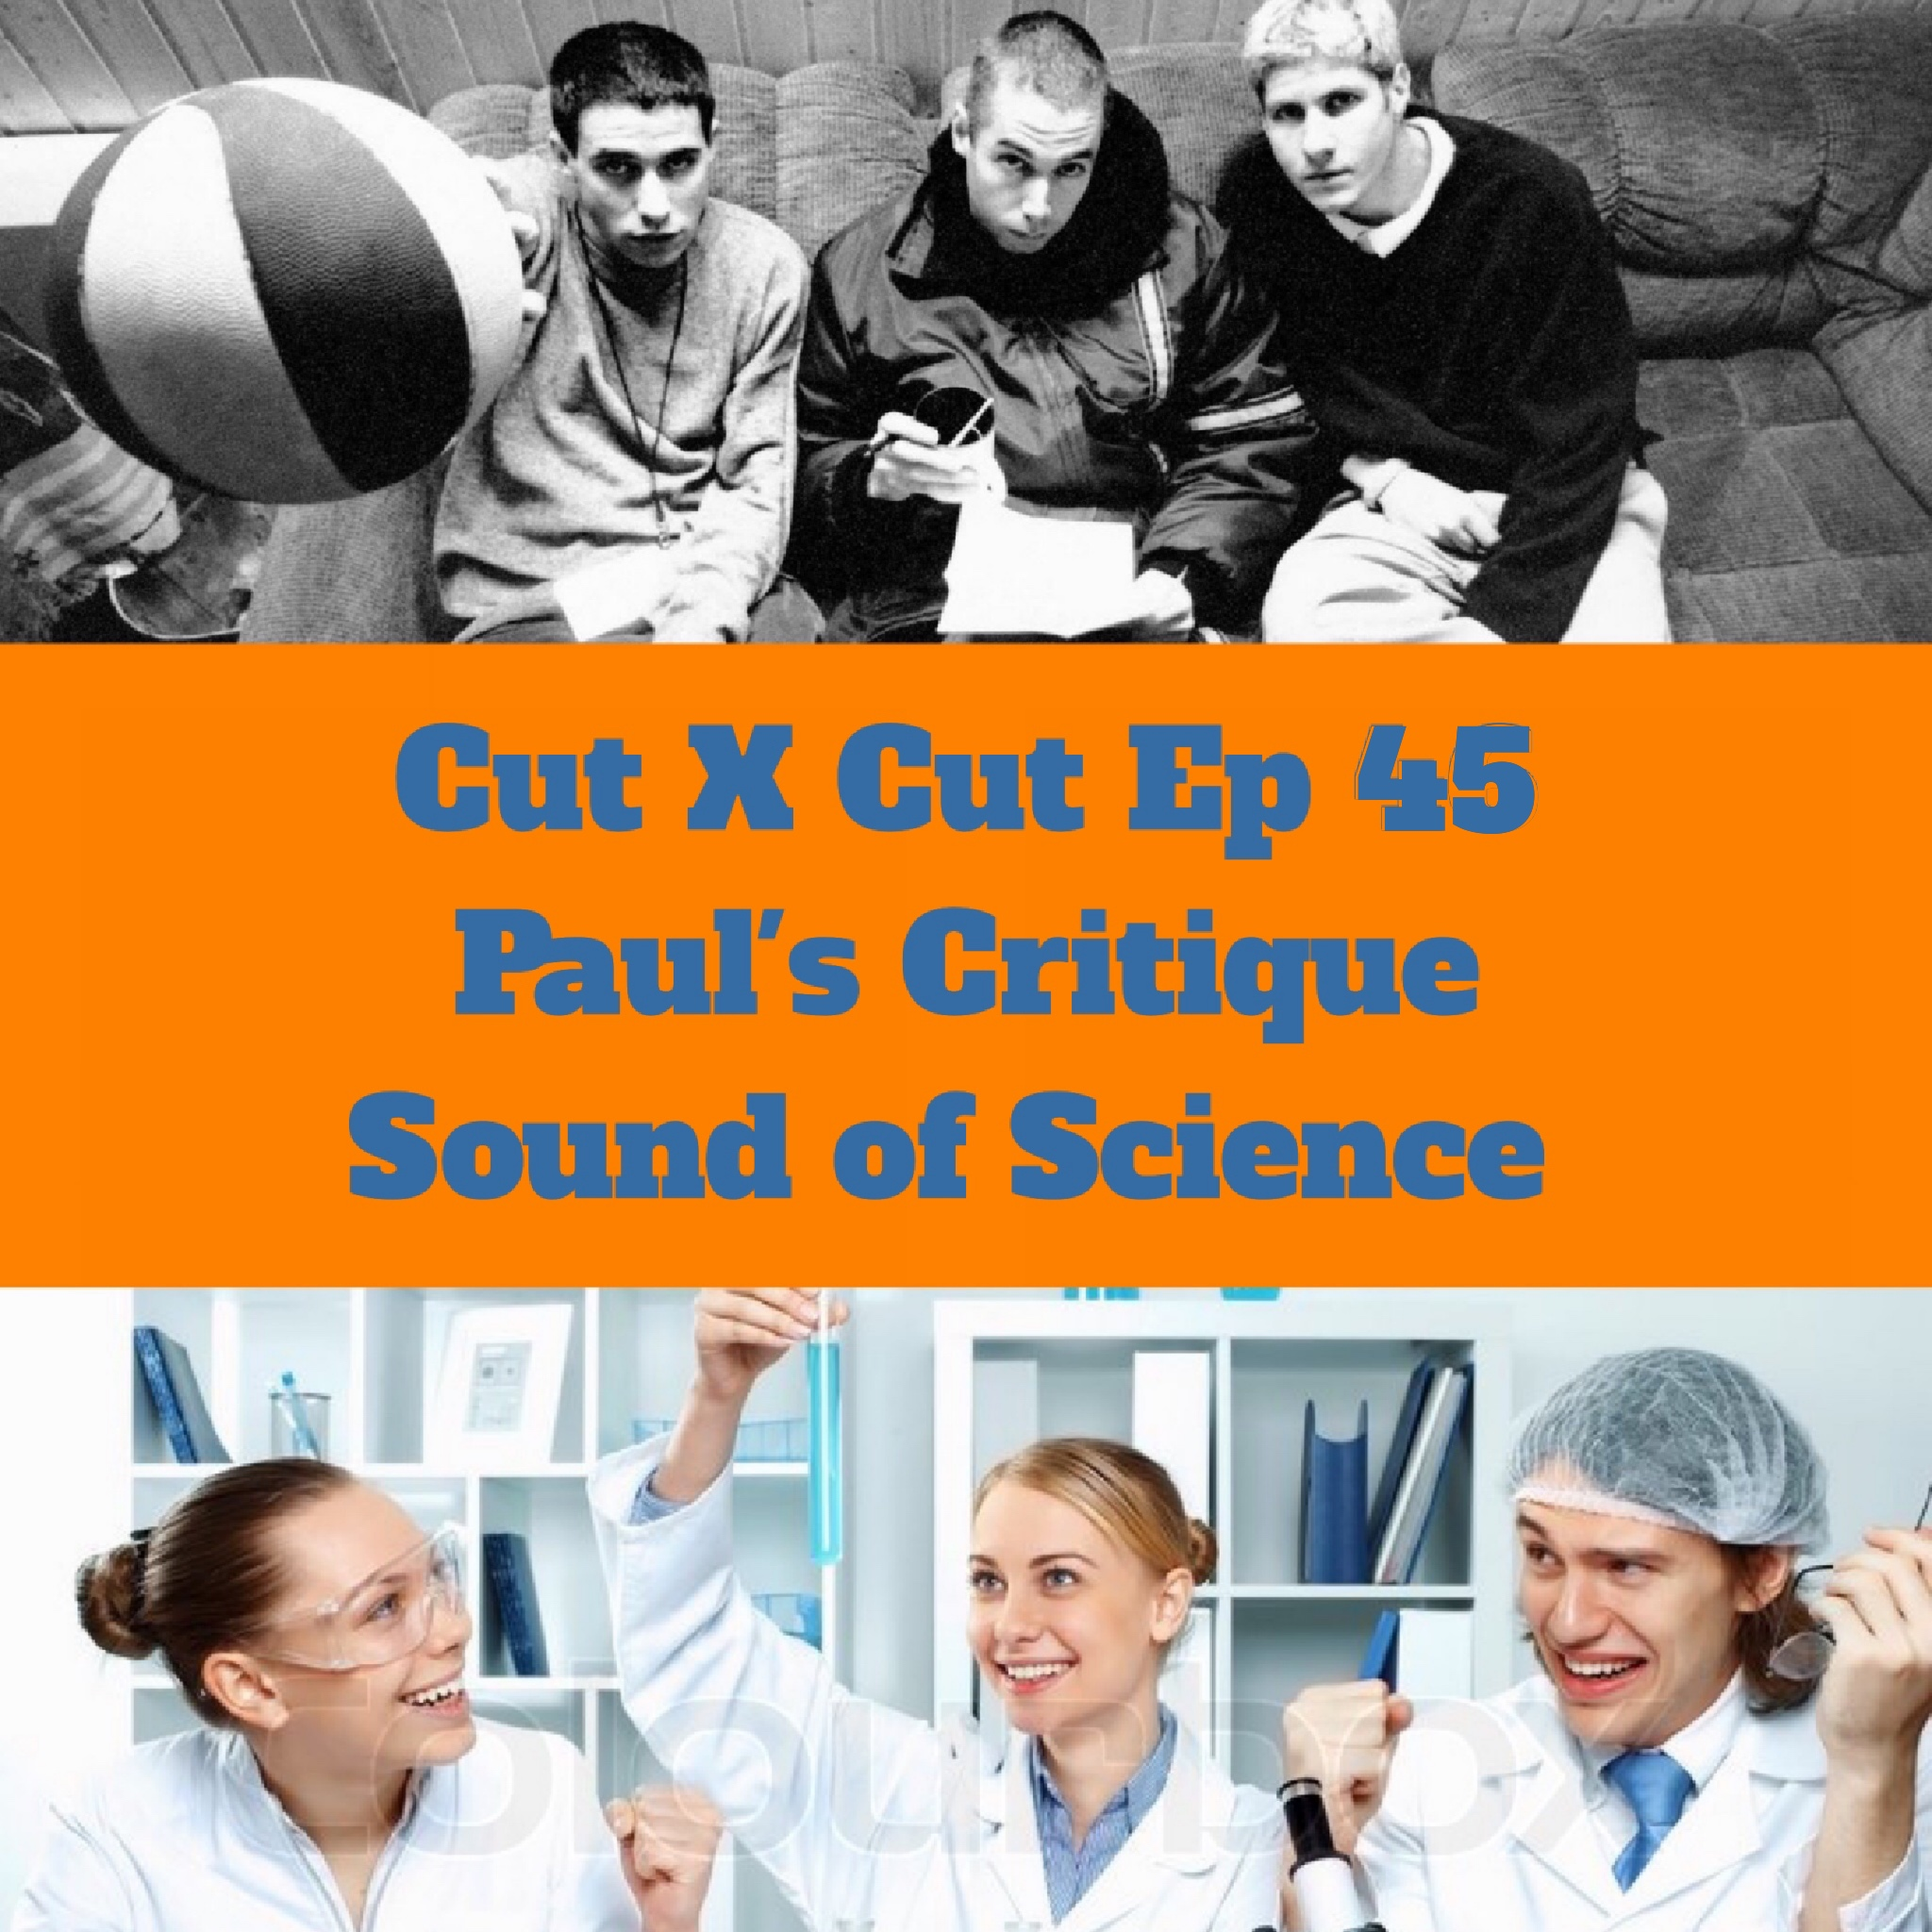 46. Paul's Critique - Science People in Science Times